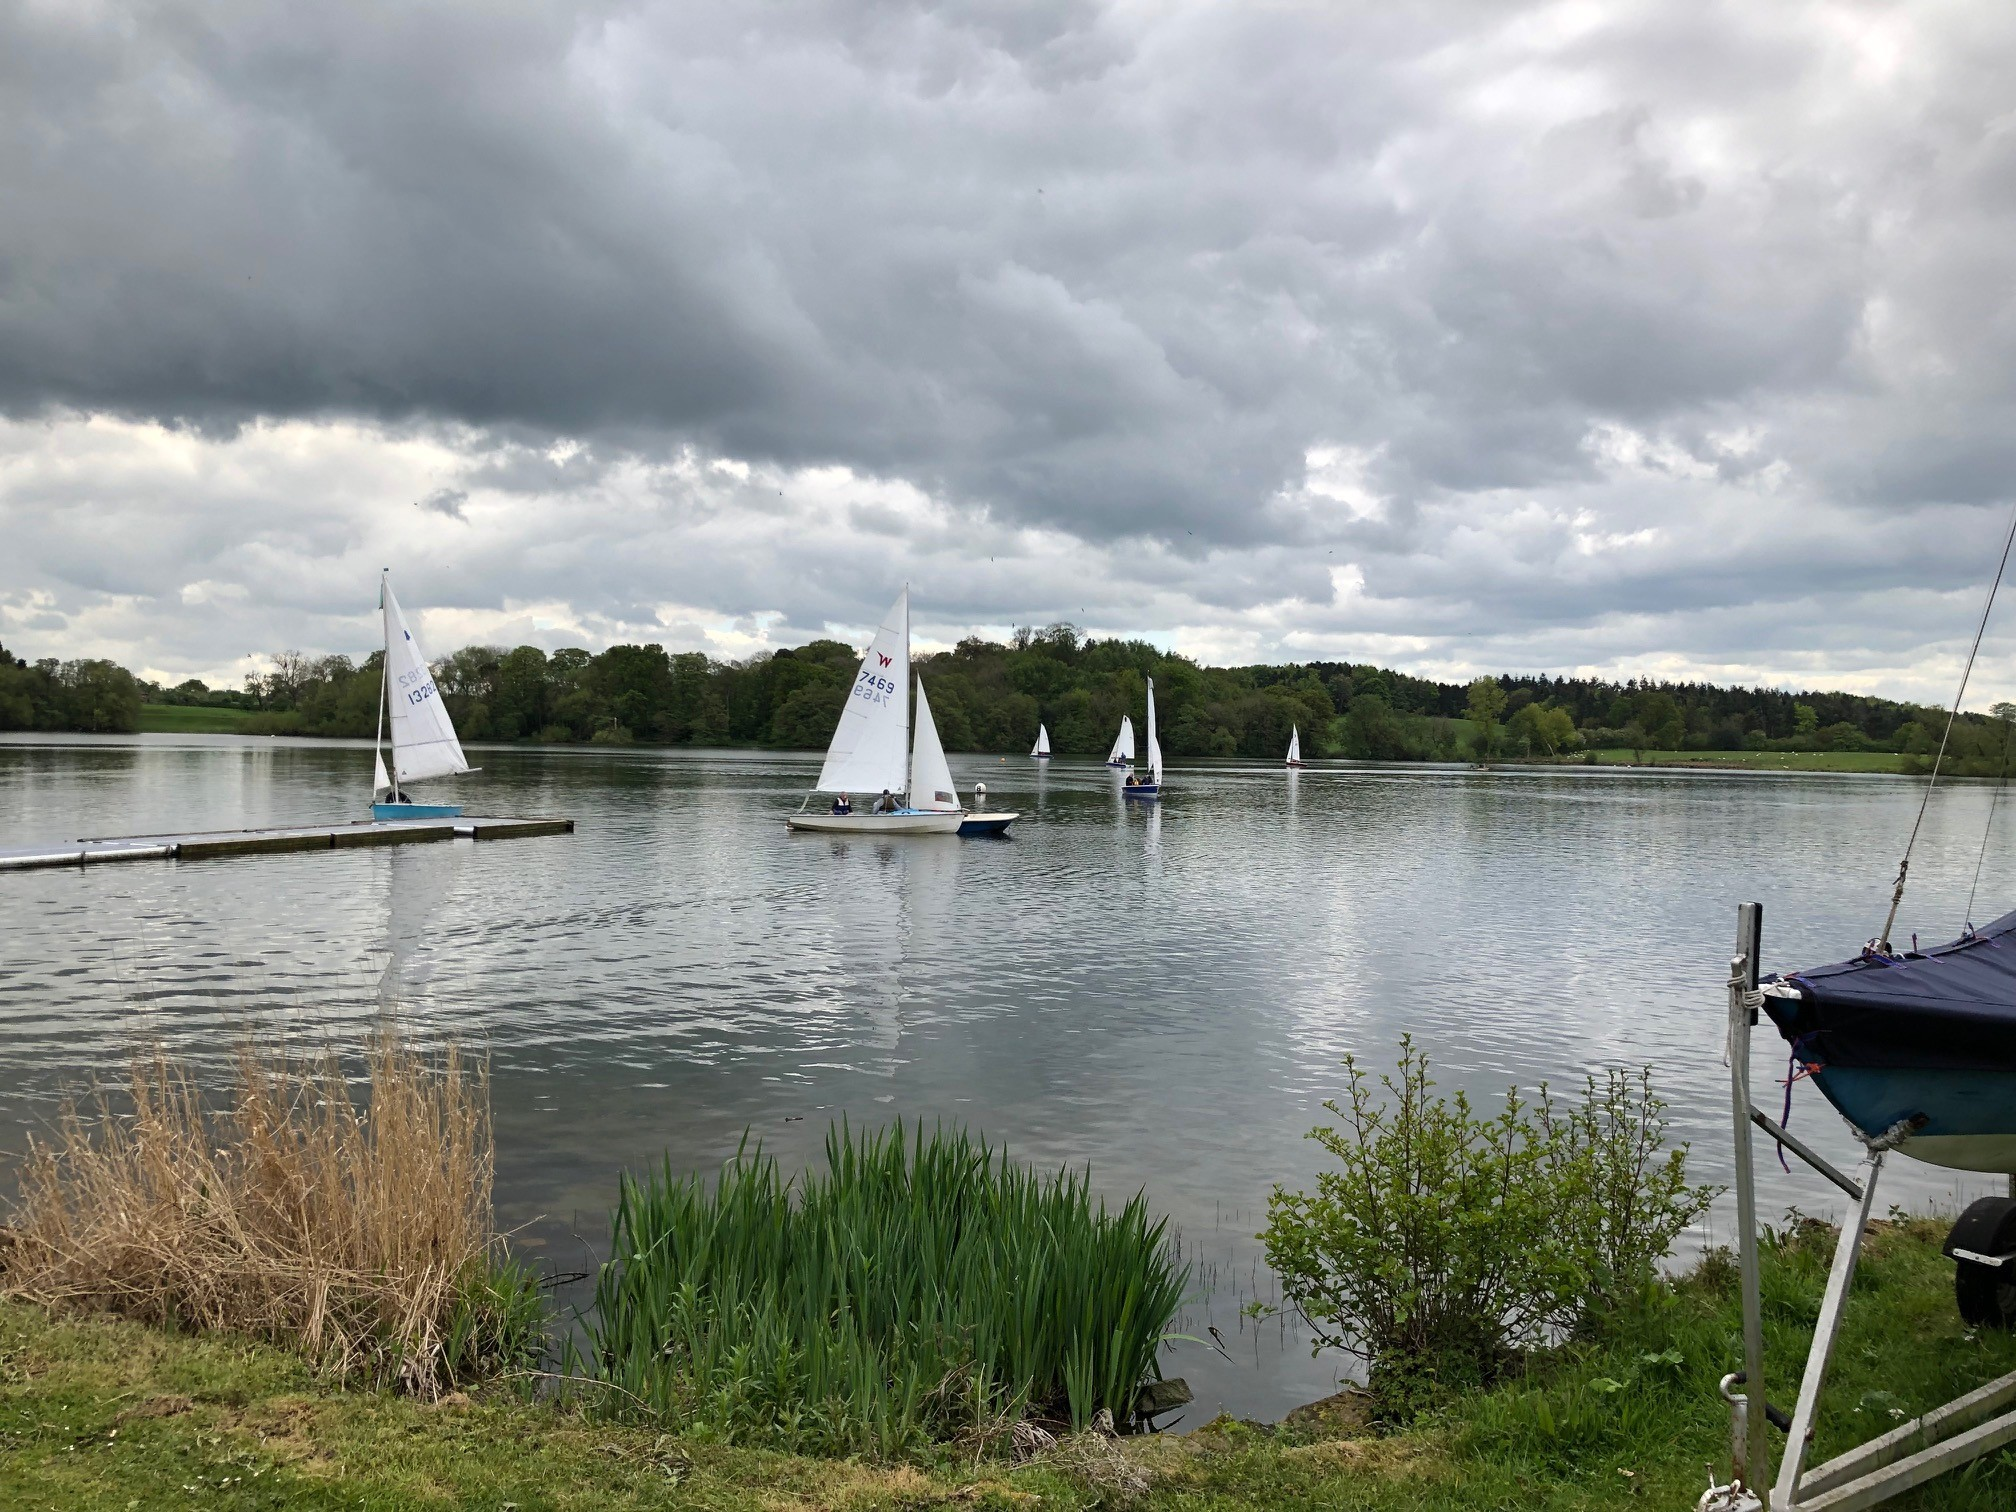 ShropshireSailing Club's open day at Whitemere